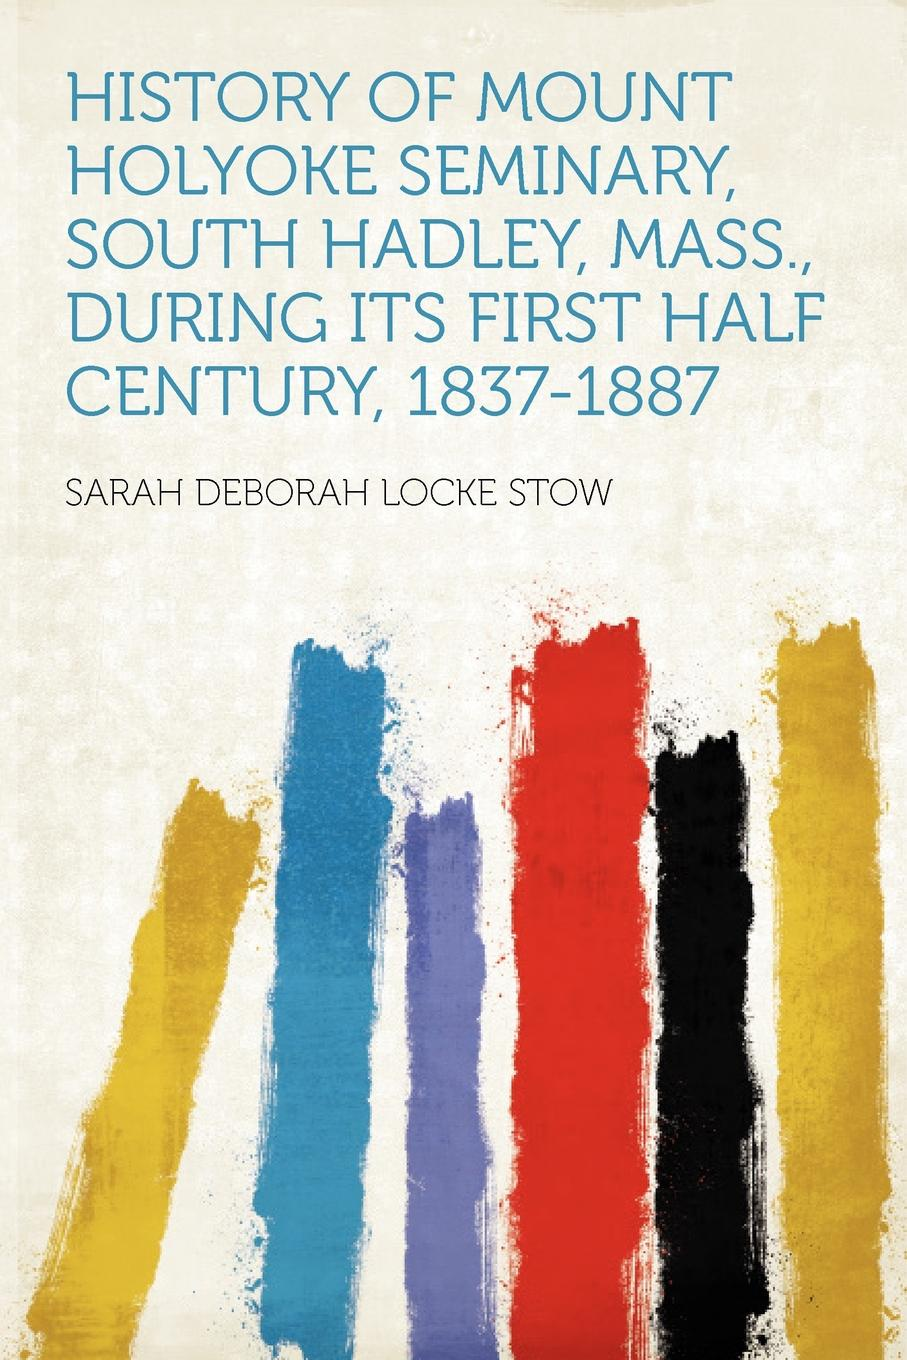 History of Mount Holyoke Seminary, South Hadley, Mass., During Its First Half Century, 1837-1887